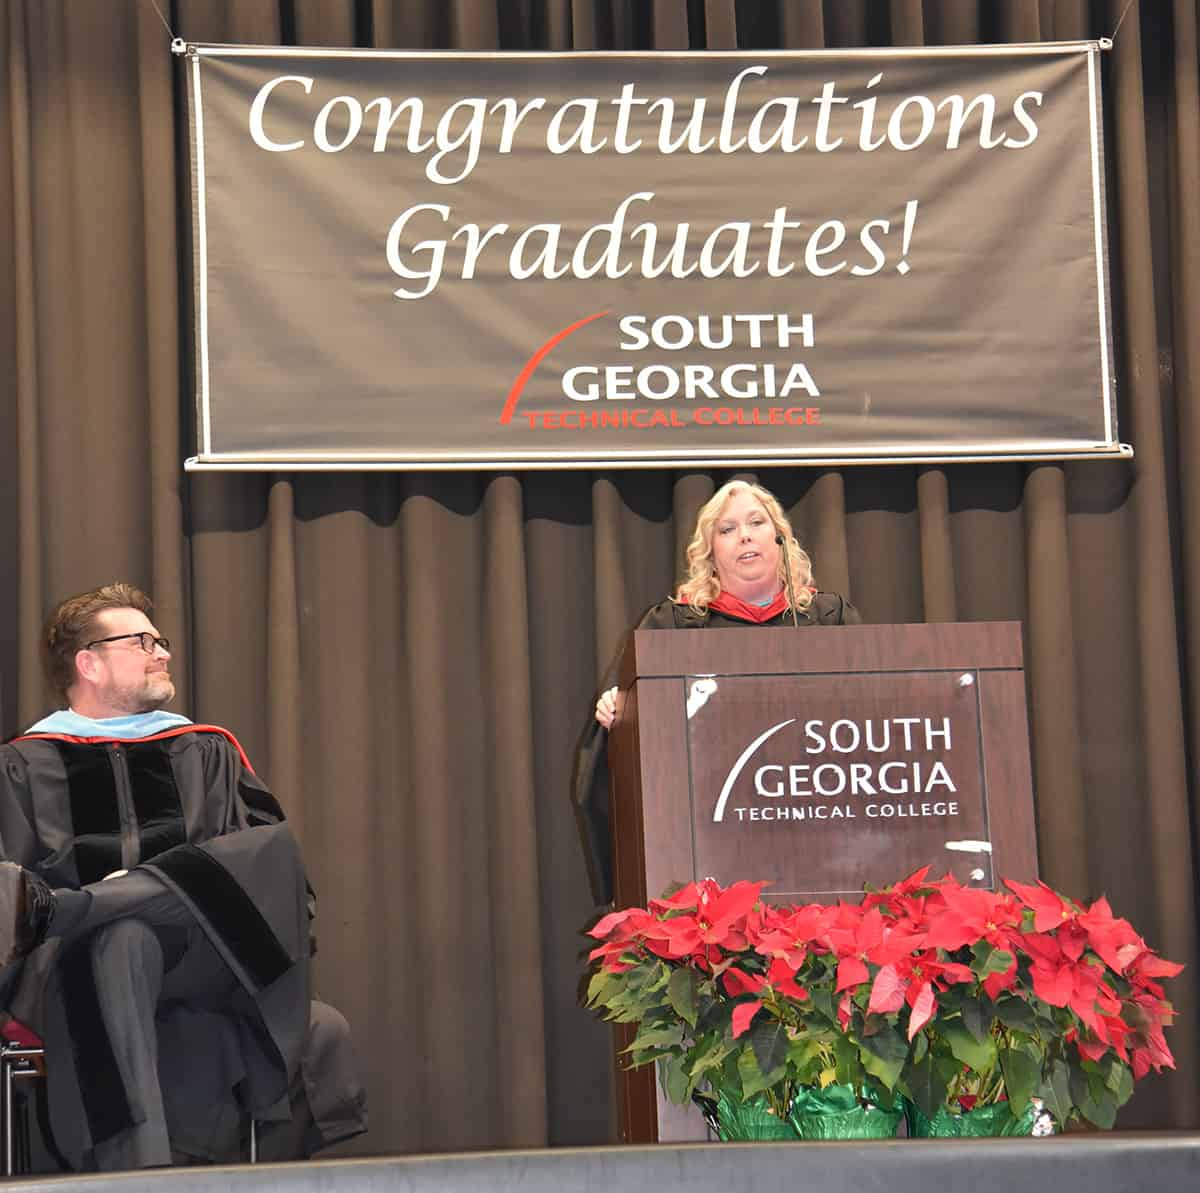 South Georgia Technical College Criminal Justice Instructor and 2018 Instructor of the Year, Teresa McCook, is shown above delivering the key note address at the SGTC Fall 2018 Graduation ceremony.